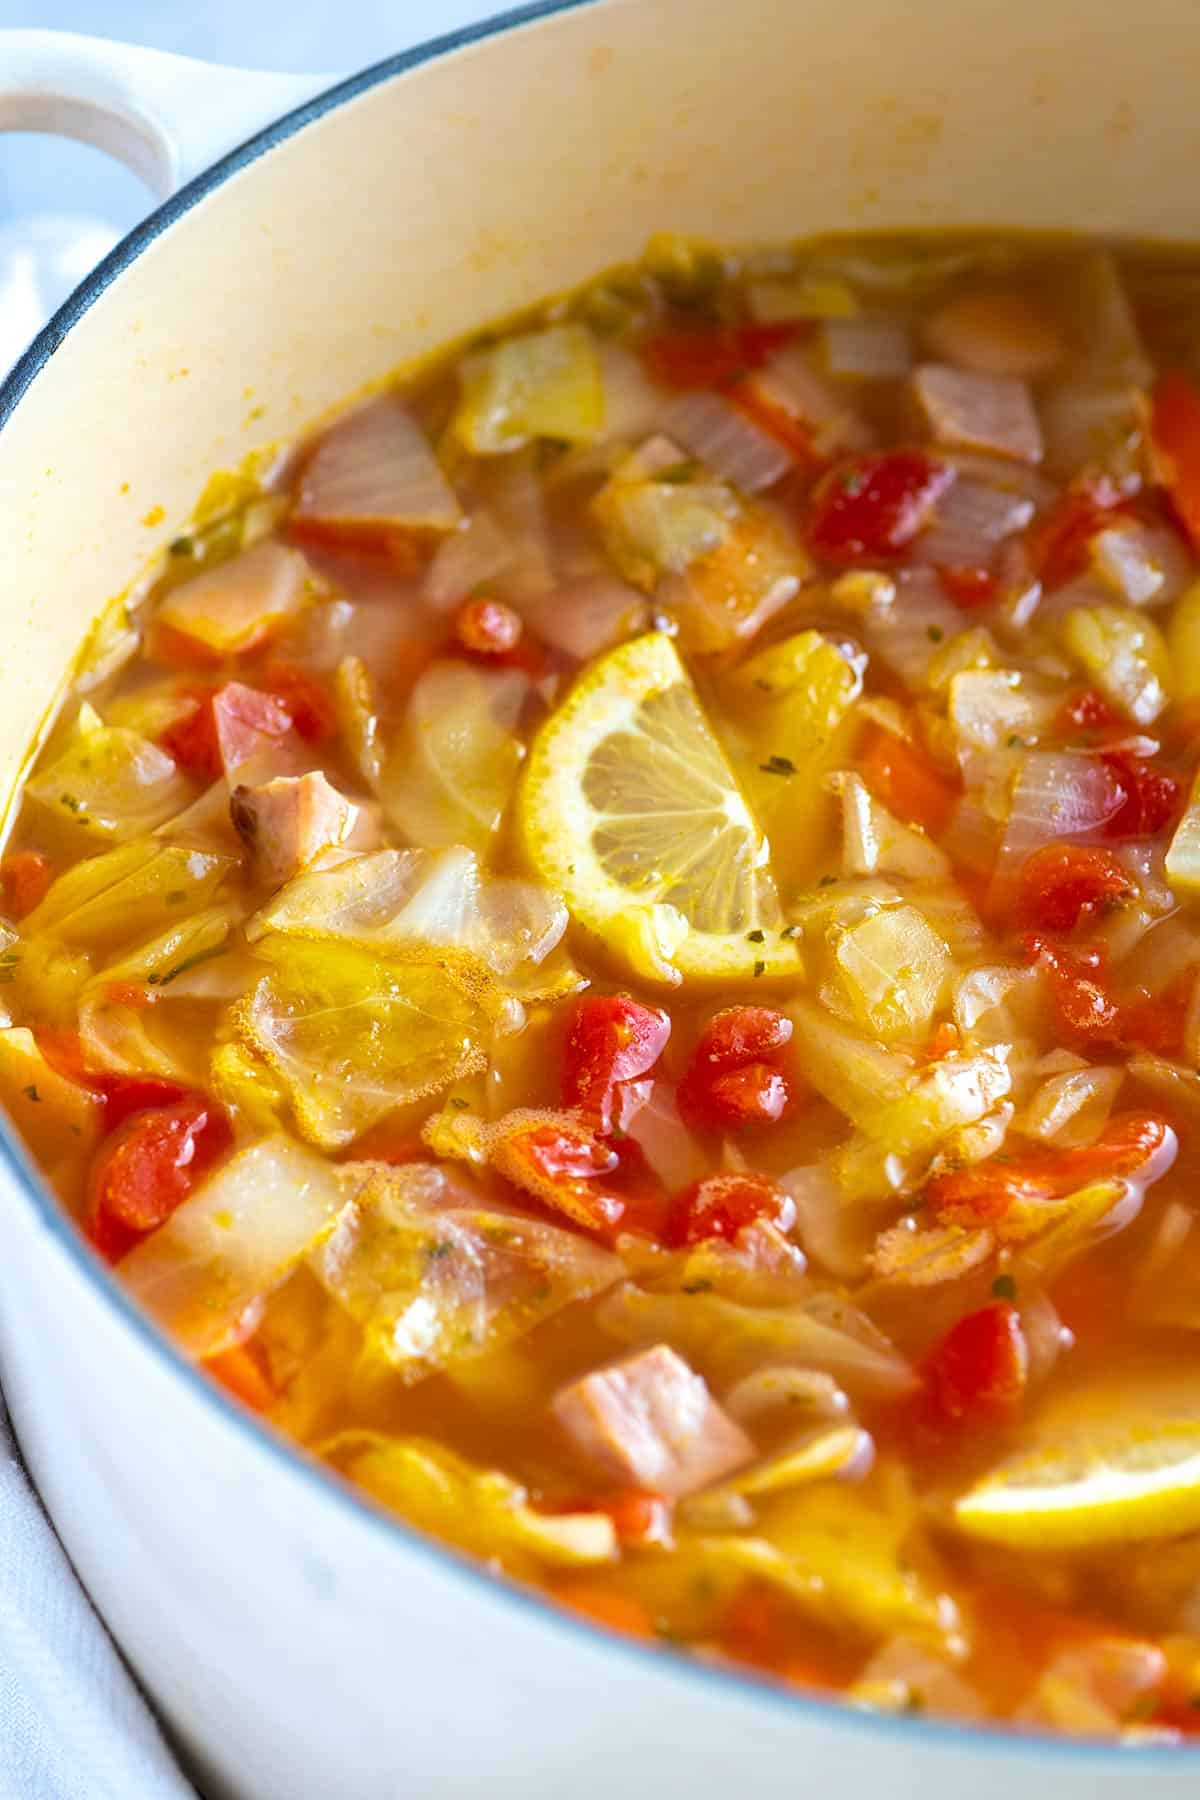 How to Make The Best Cabbage Soup